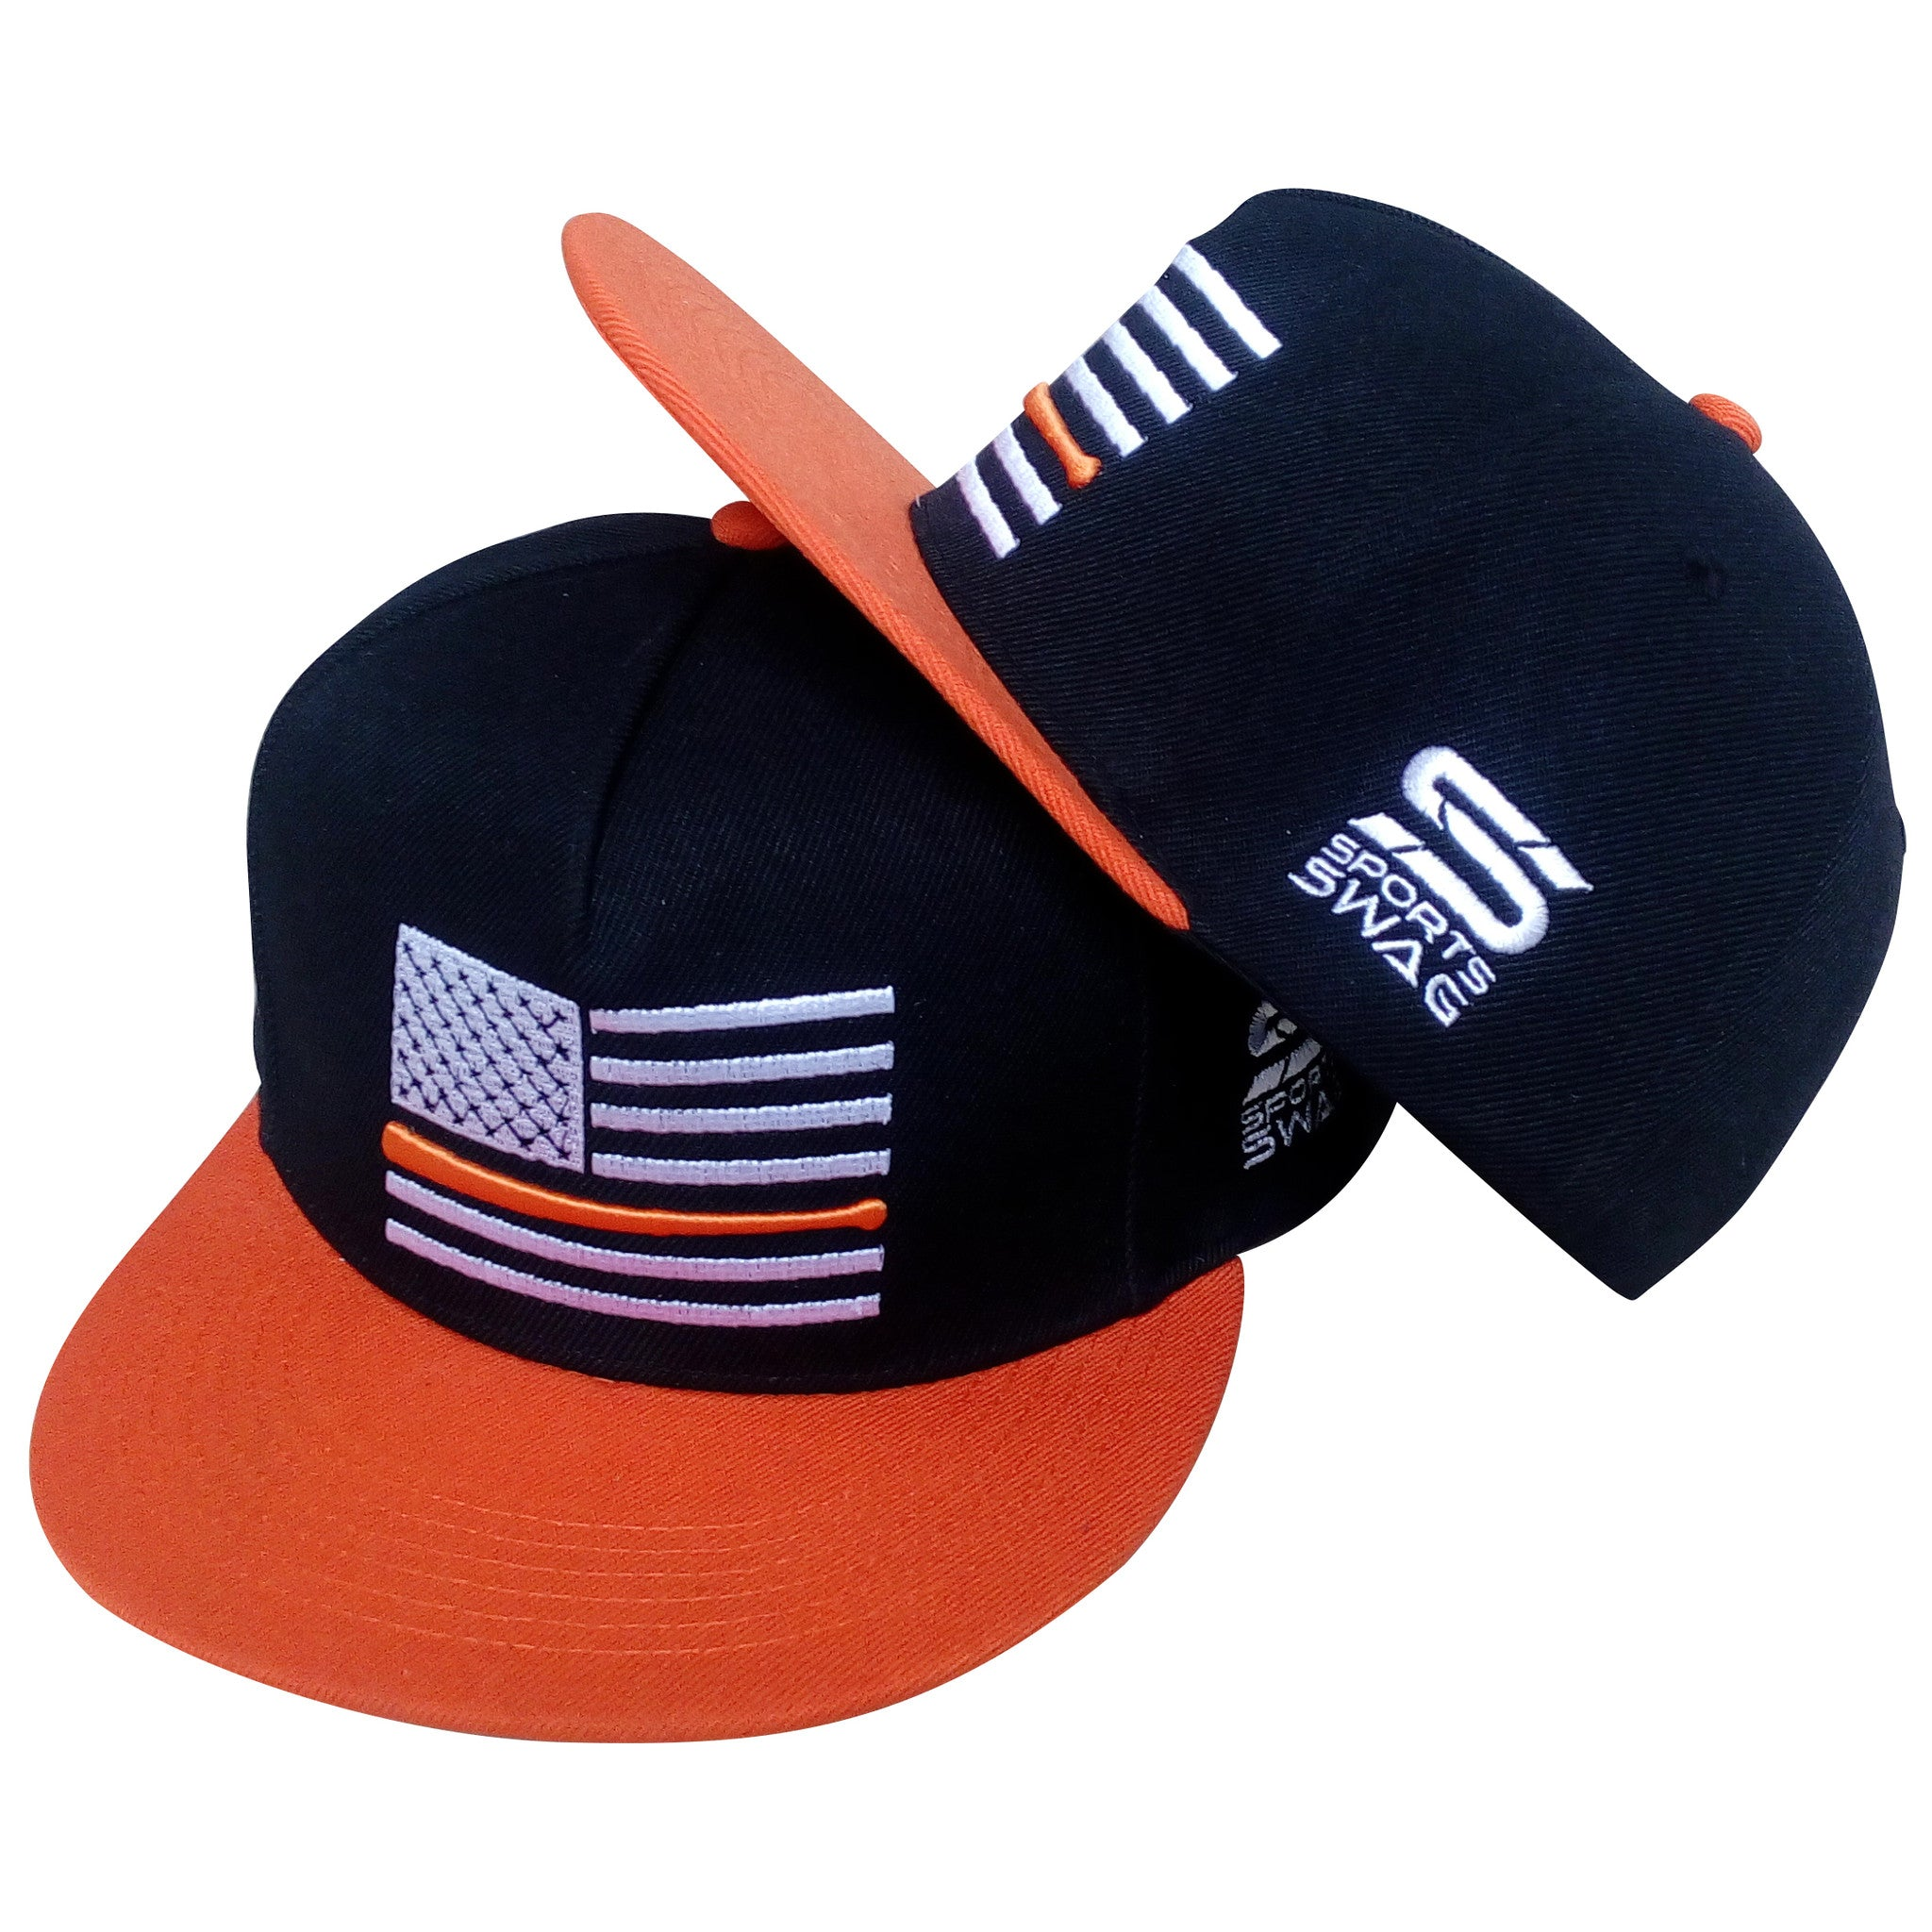 America's Pastime Orange and Black Snapback